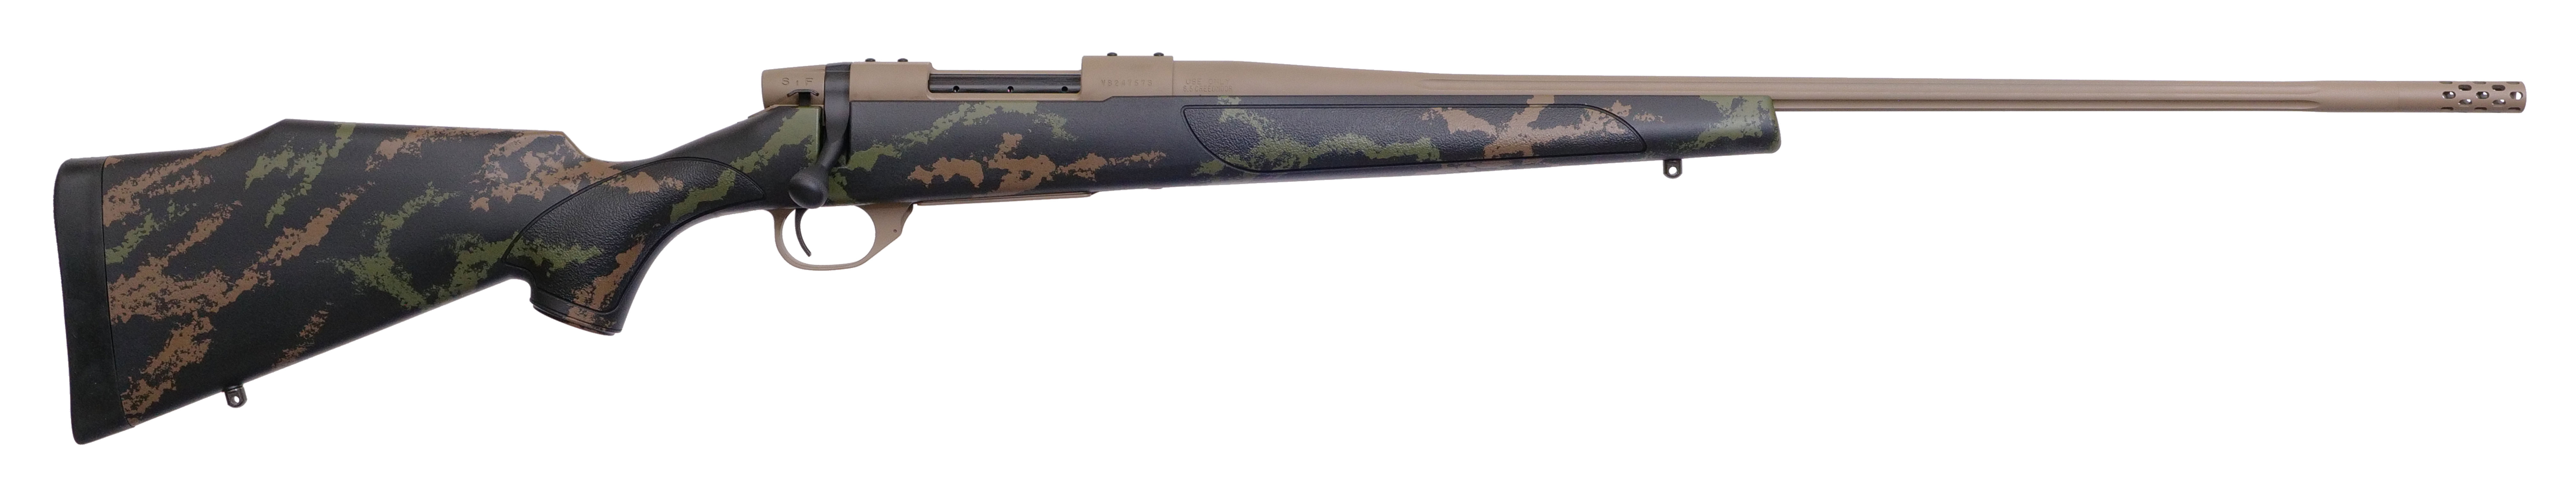 Weatherby VHC300WR8B Vanguard High Country 300 Wthby Mag 3+1 26